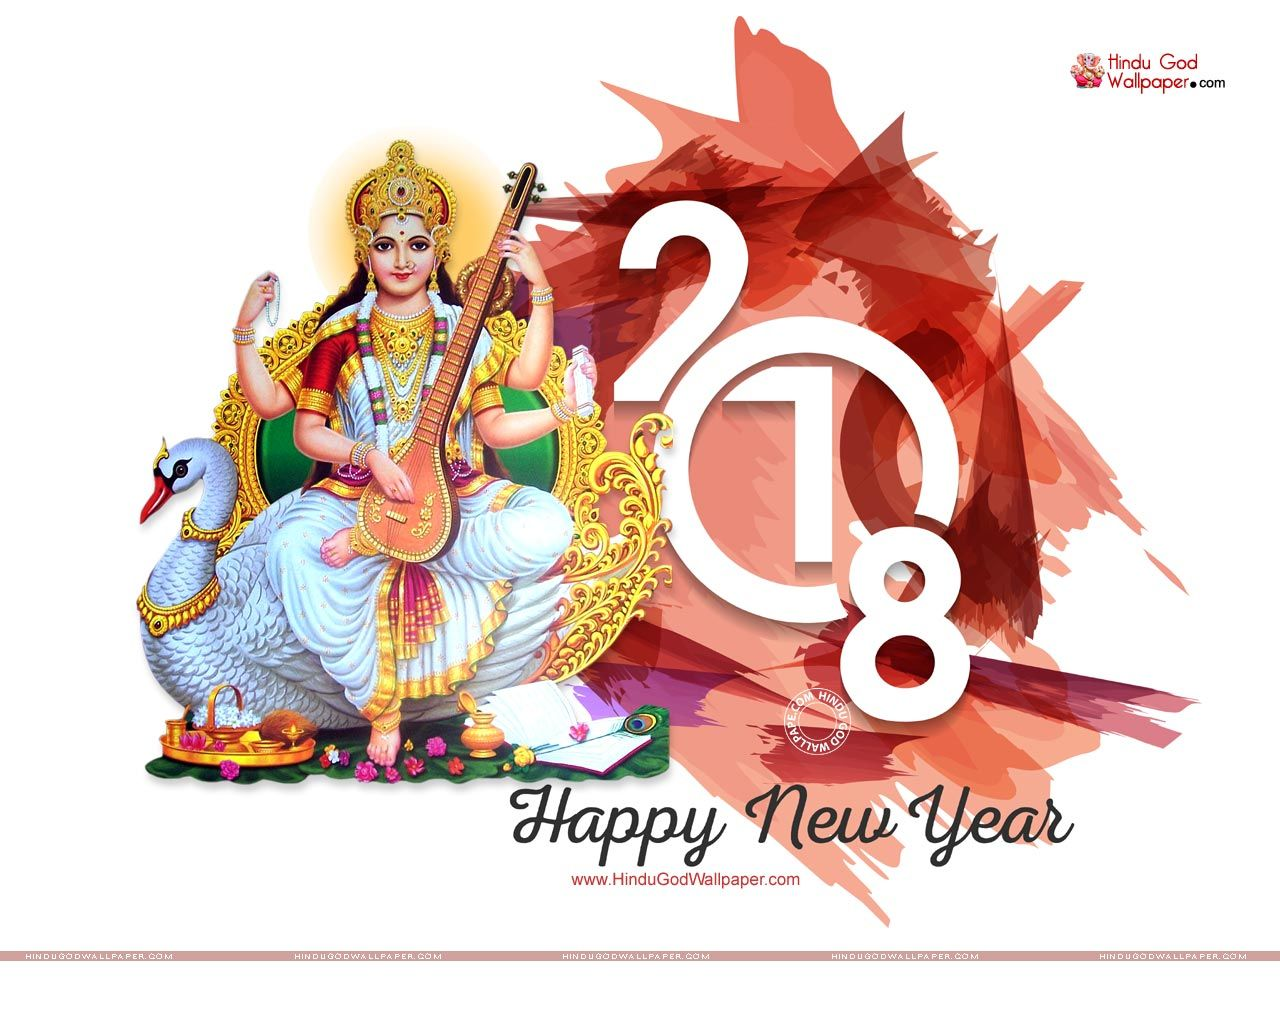 happy new year 2018 pictures hd photos images free download wallpaper 2016